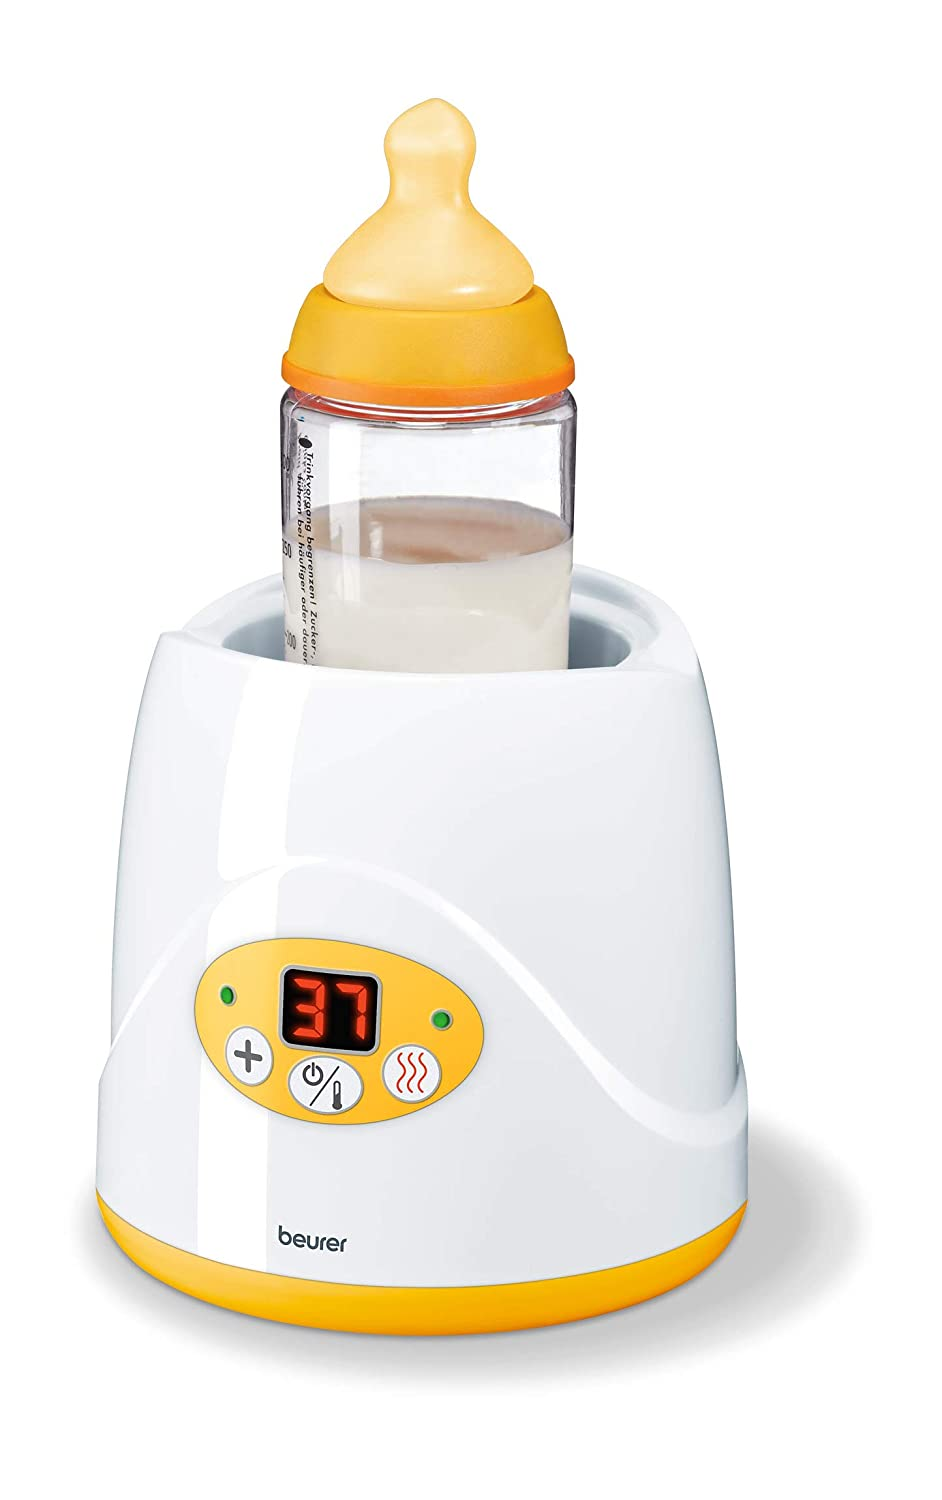 Beurer BY 52 baby food and bottle warmer with warming function & led display. 954.02